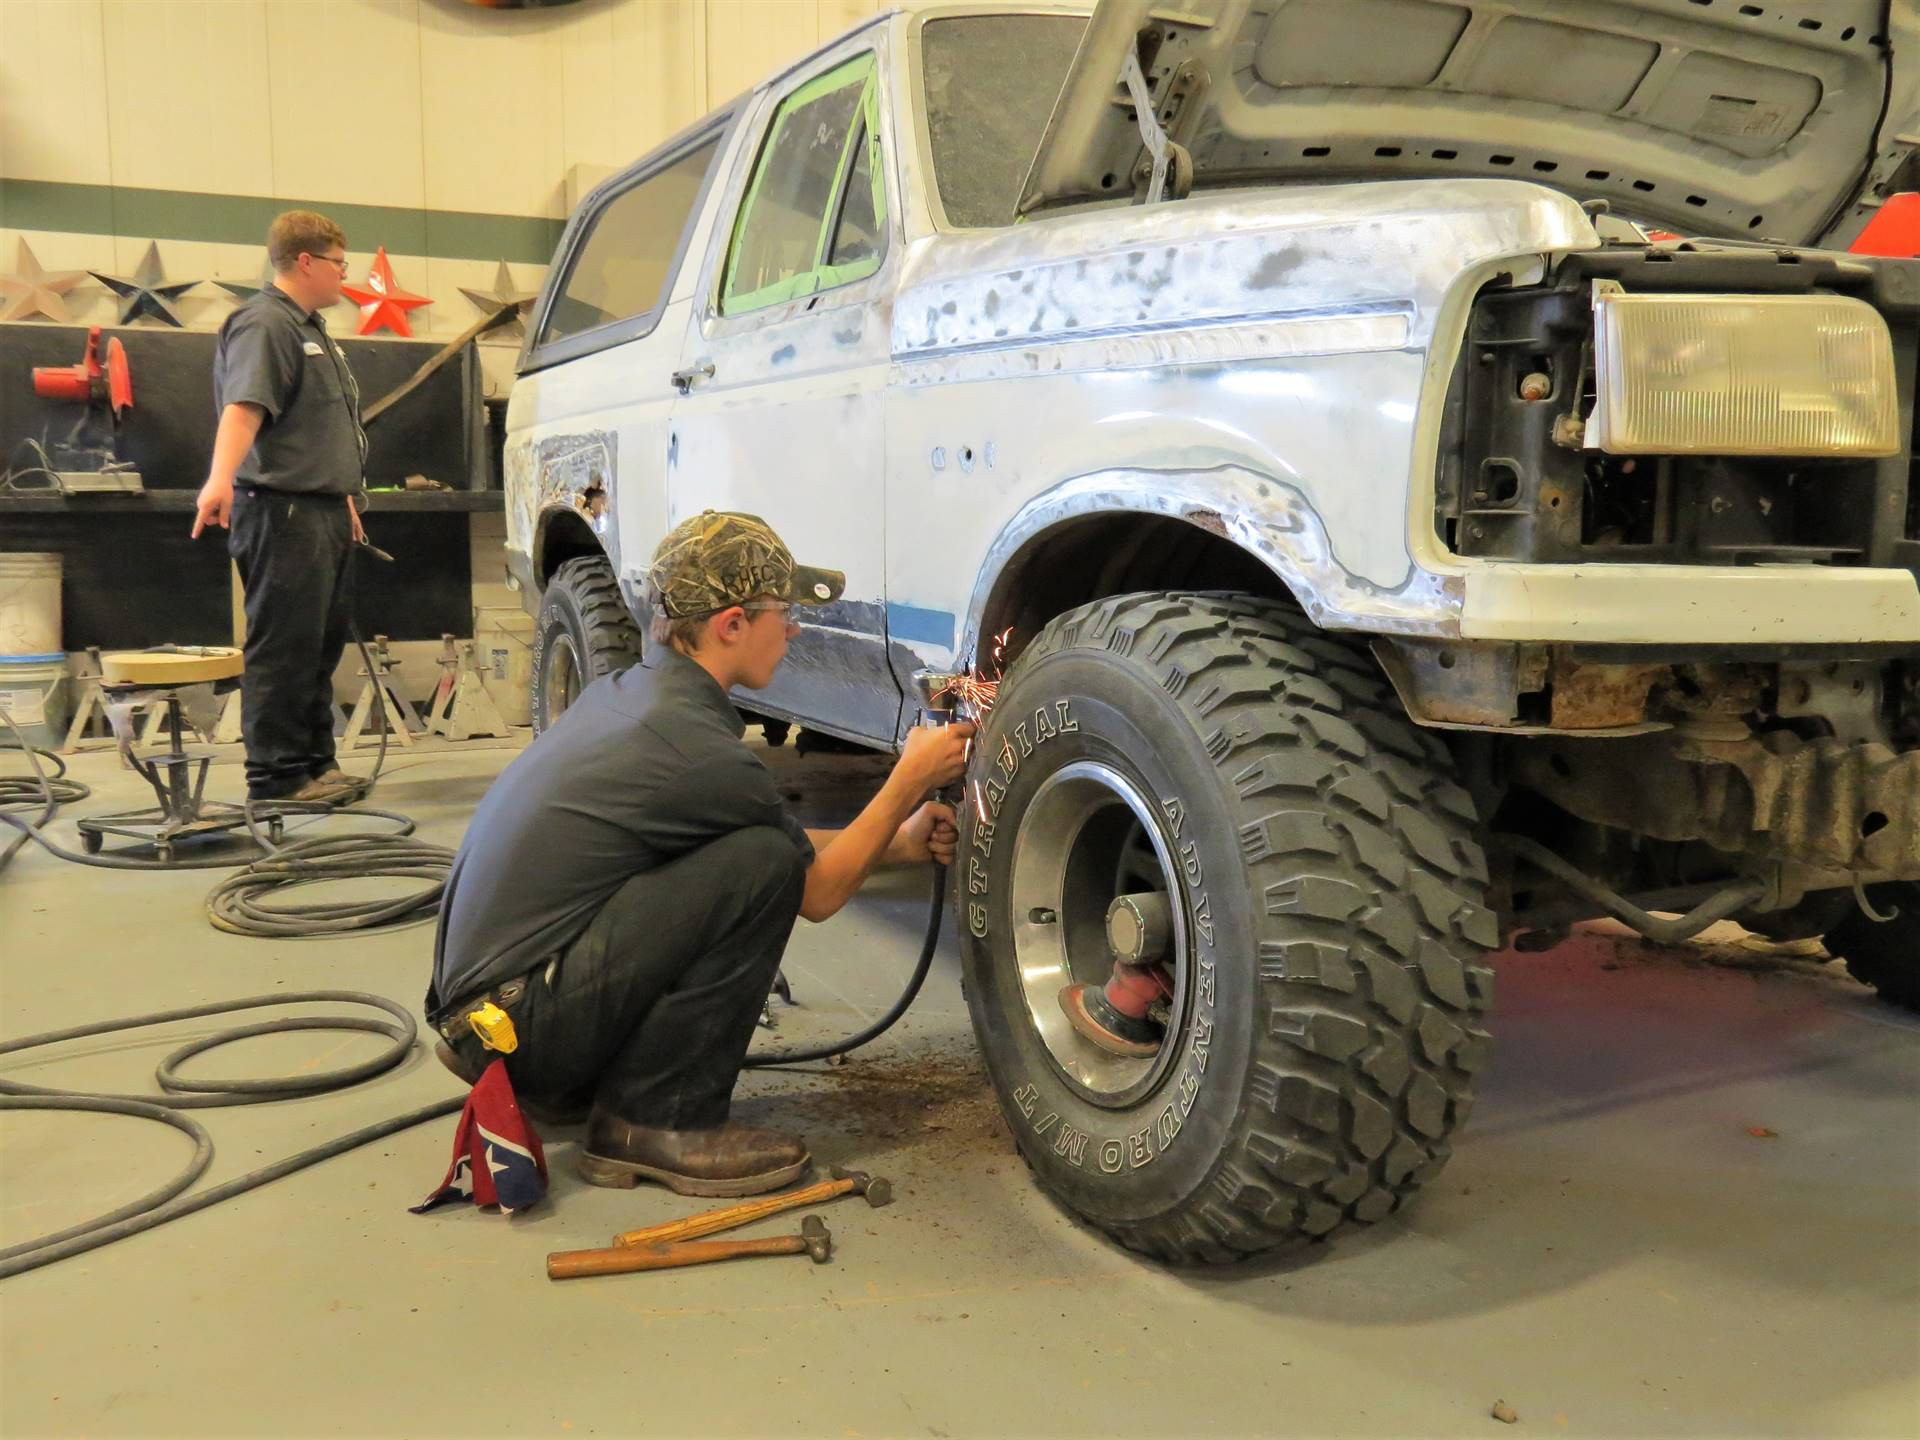 Auto Body Repair students uses a grinding tool to smooth the surface on a customer vehicle.